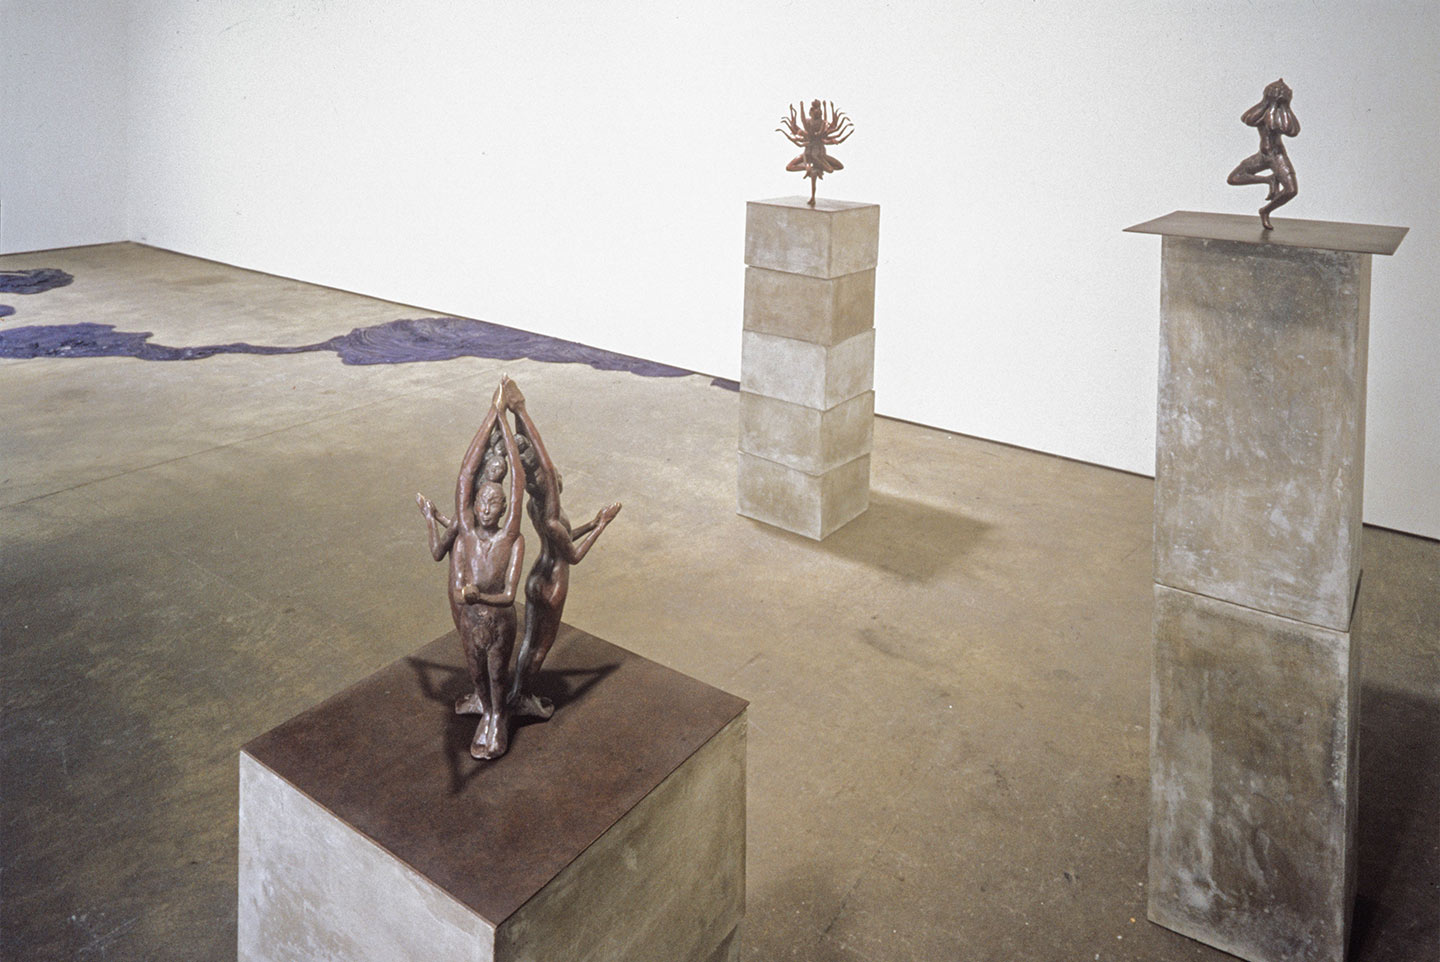 Installation View,  Flowers Found ,solo exhibition at Elizabeth Harris Gallery, NY, 2002.